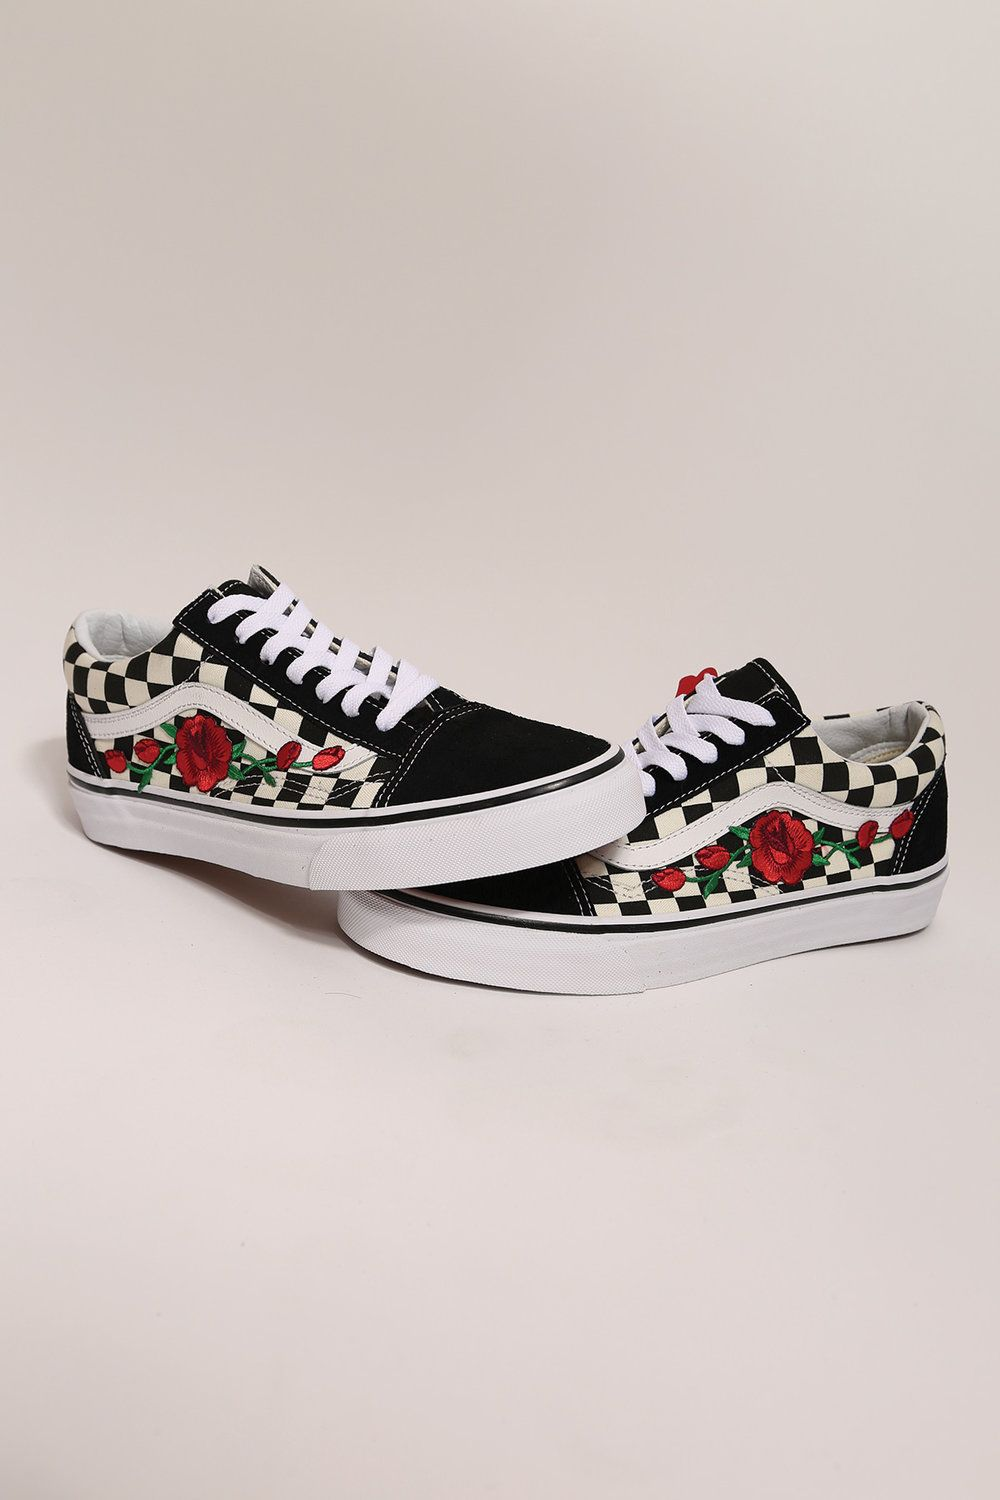 Custom rose vans checkered old skool low top  79f1ac19c